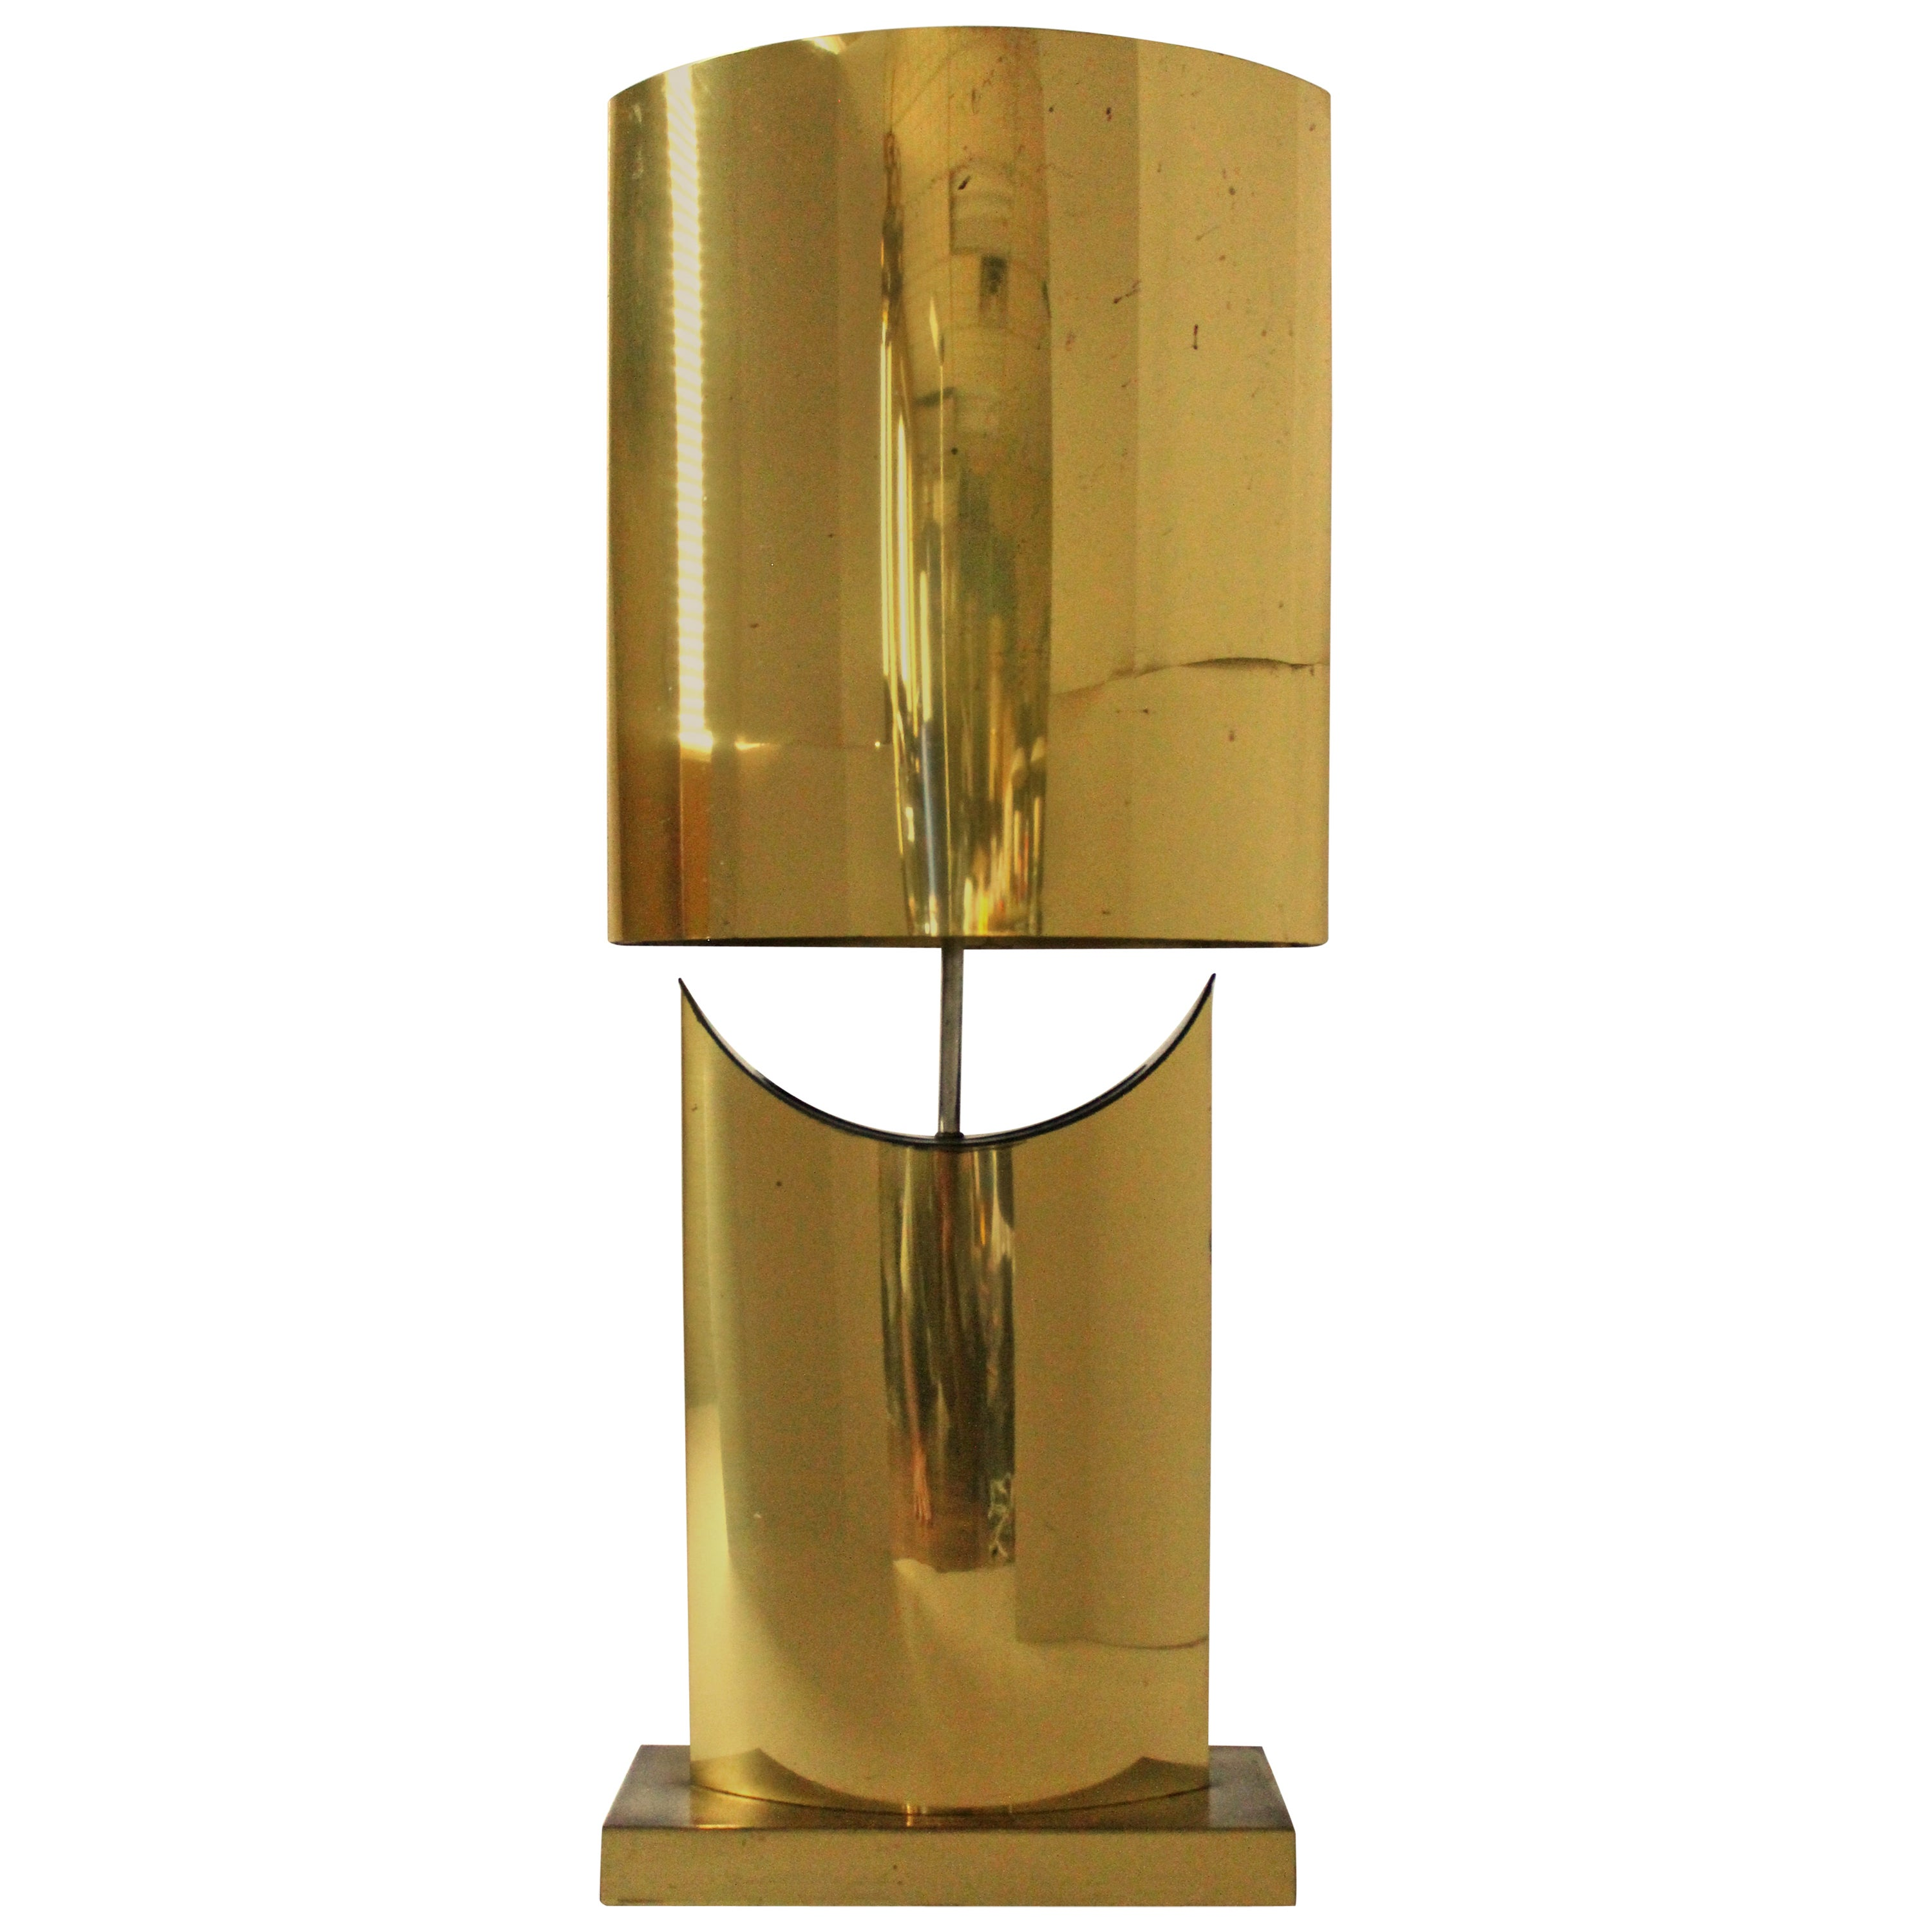 C. Jere Huge Brass Plated Table Lamp , Mid-Century Modern, 1970s, USA